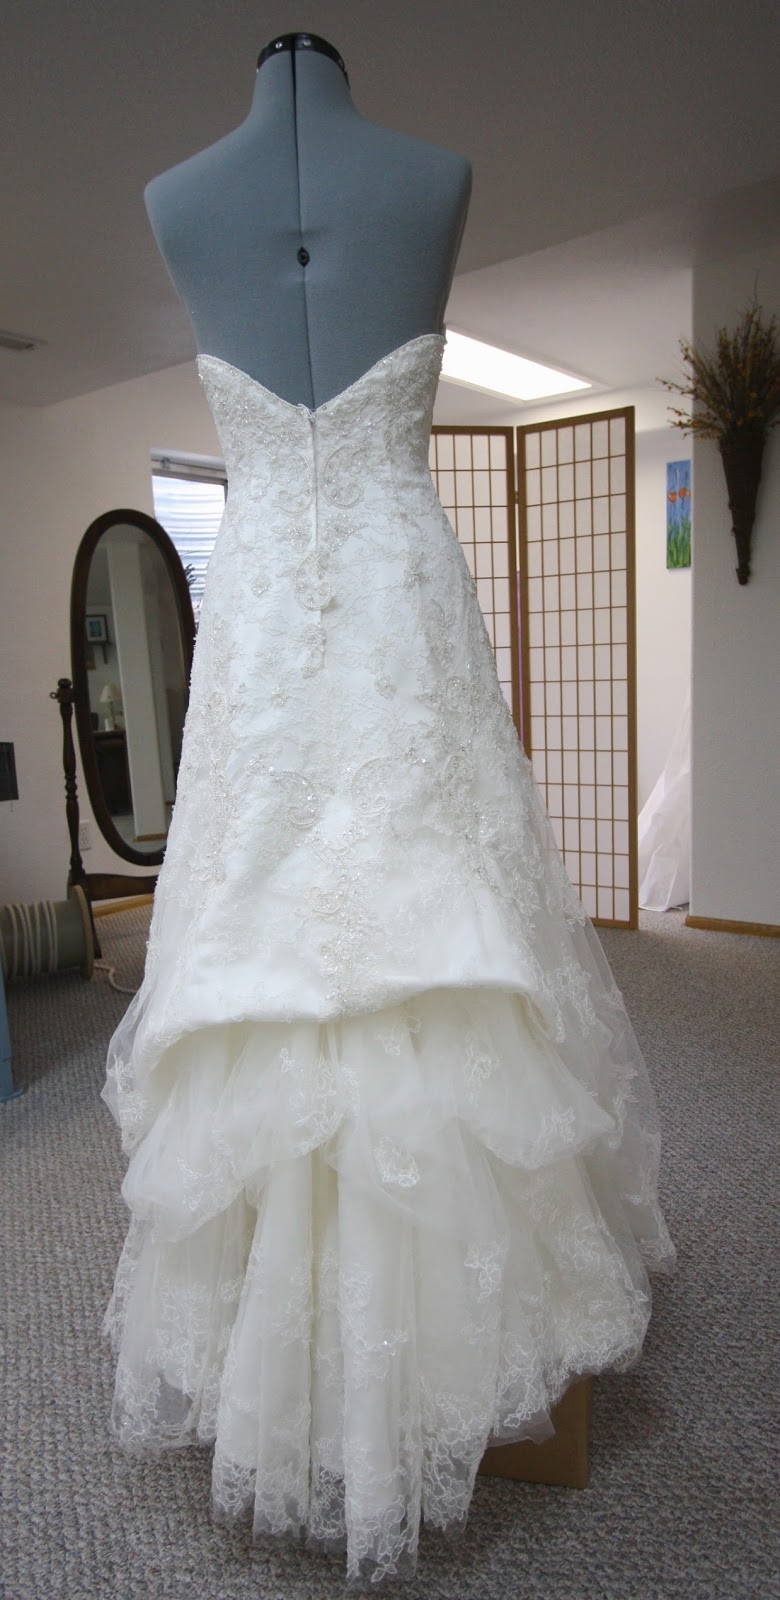 His, Hers And Ours DIY: WEDDING GOWN BUSTLE